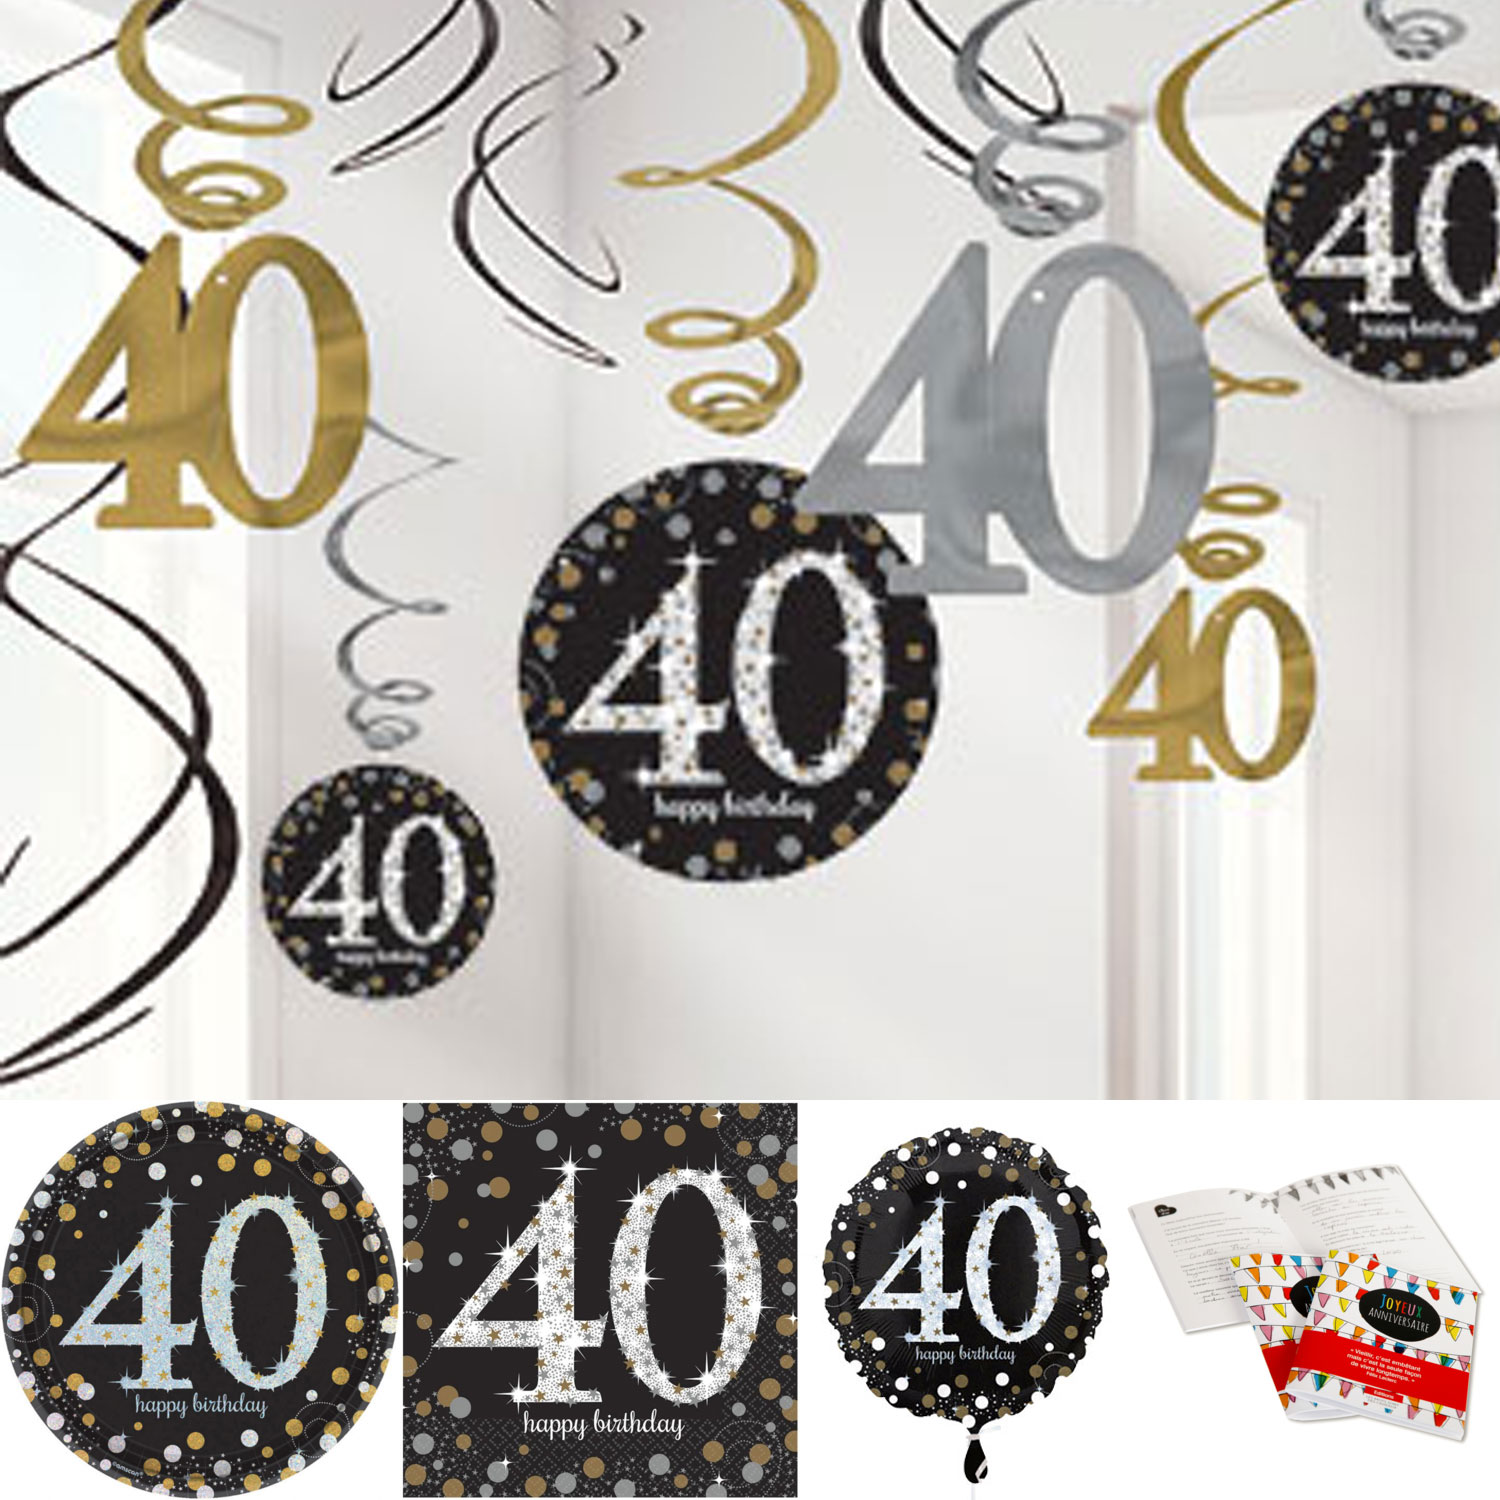 decoration table anniversaire 50 ans femme decoration table anniversaire 50 ans femme luxury. Black Bedroom Furniture Sets. Home Design Ideas